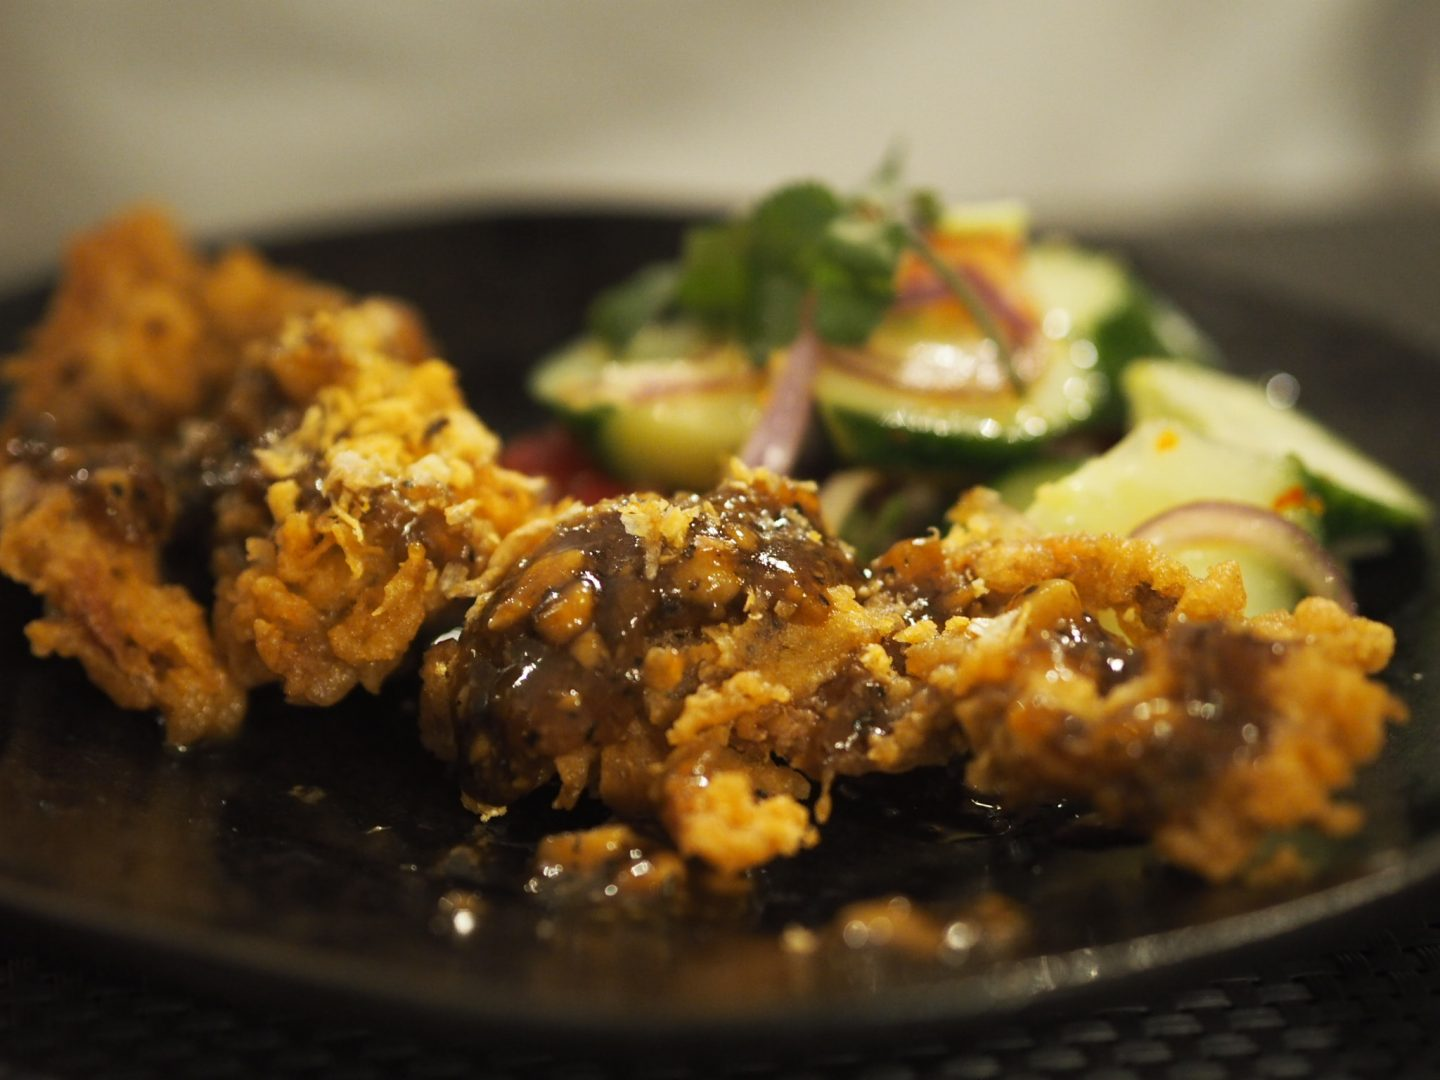 The Giggling Squid soft shell crab